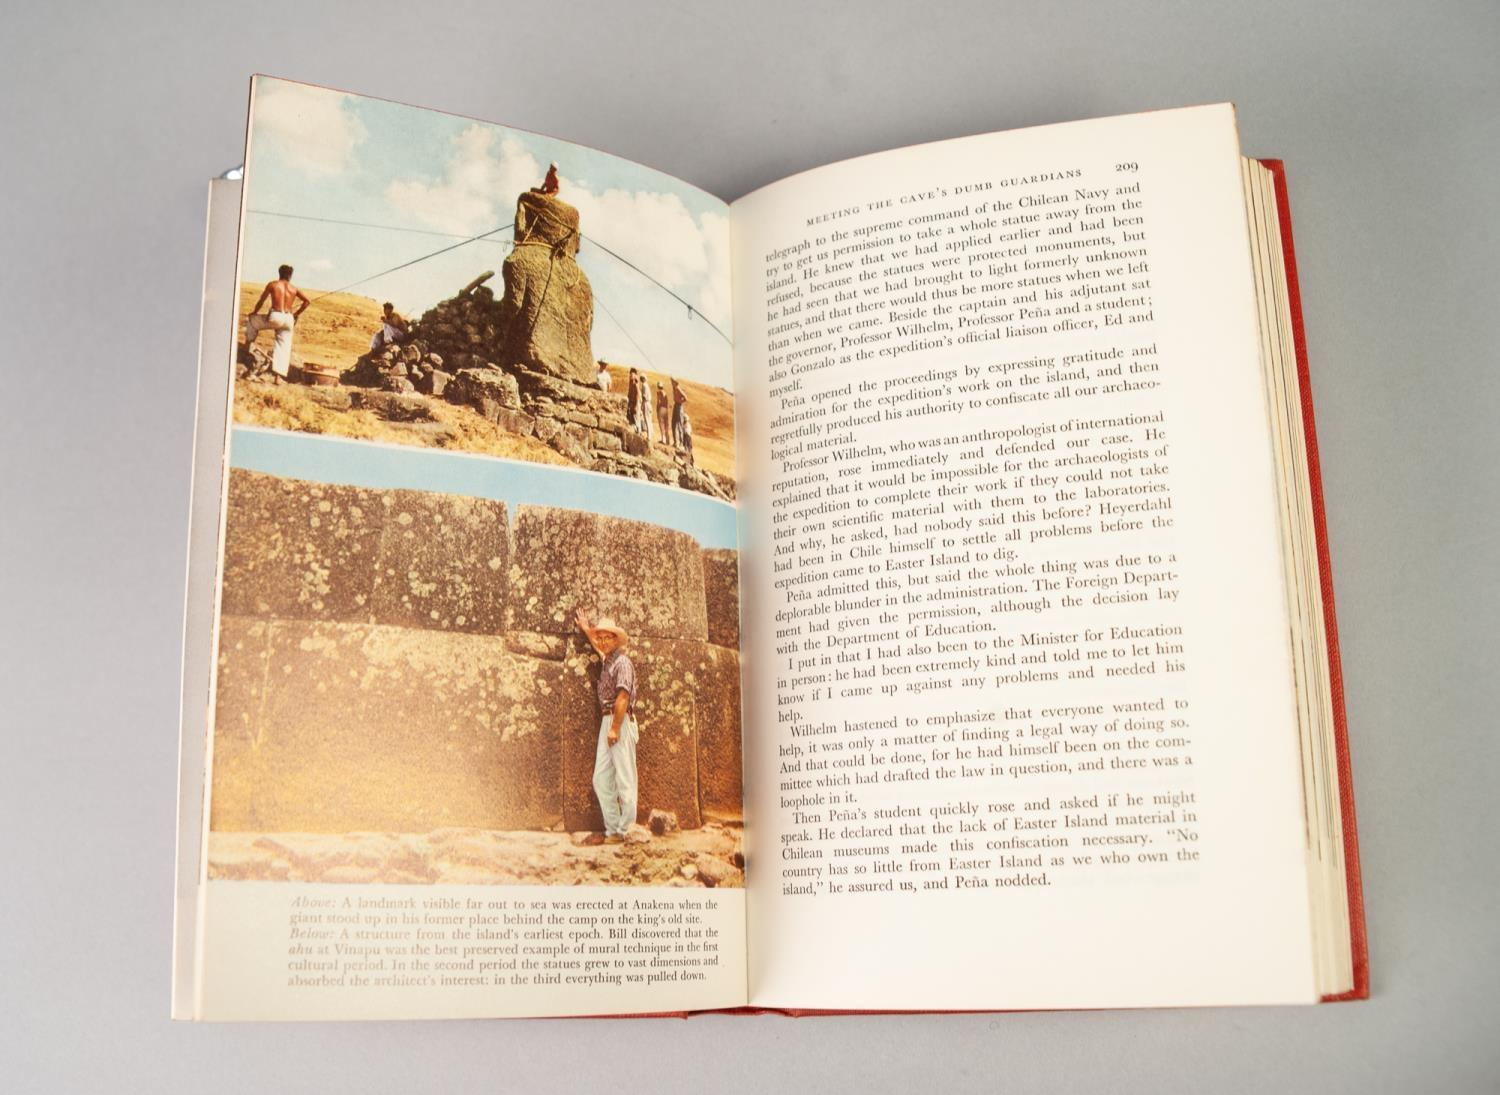 Lot 11 - THOR HEYERDAHL AKU-AKU, 1st EDITION, FIRST PUBLISHED APRIL 1958, PUBLISHED BY ALLEN AND UNWIN WITH